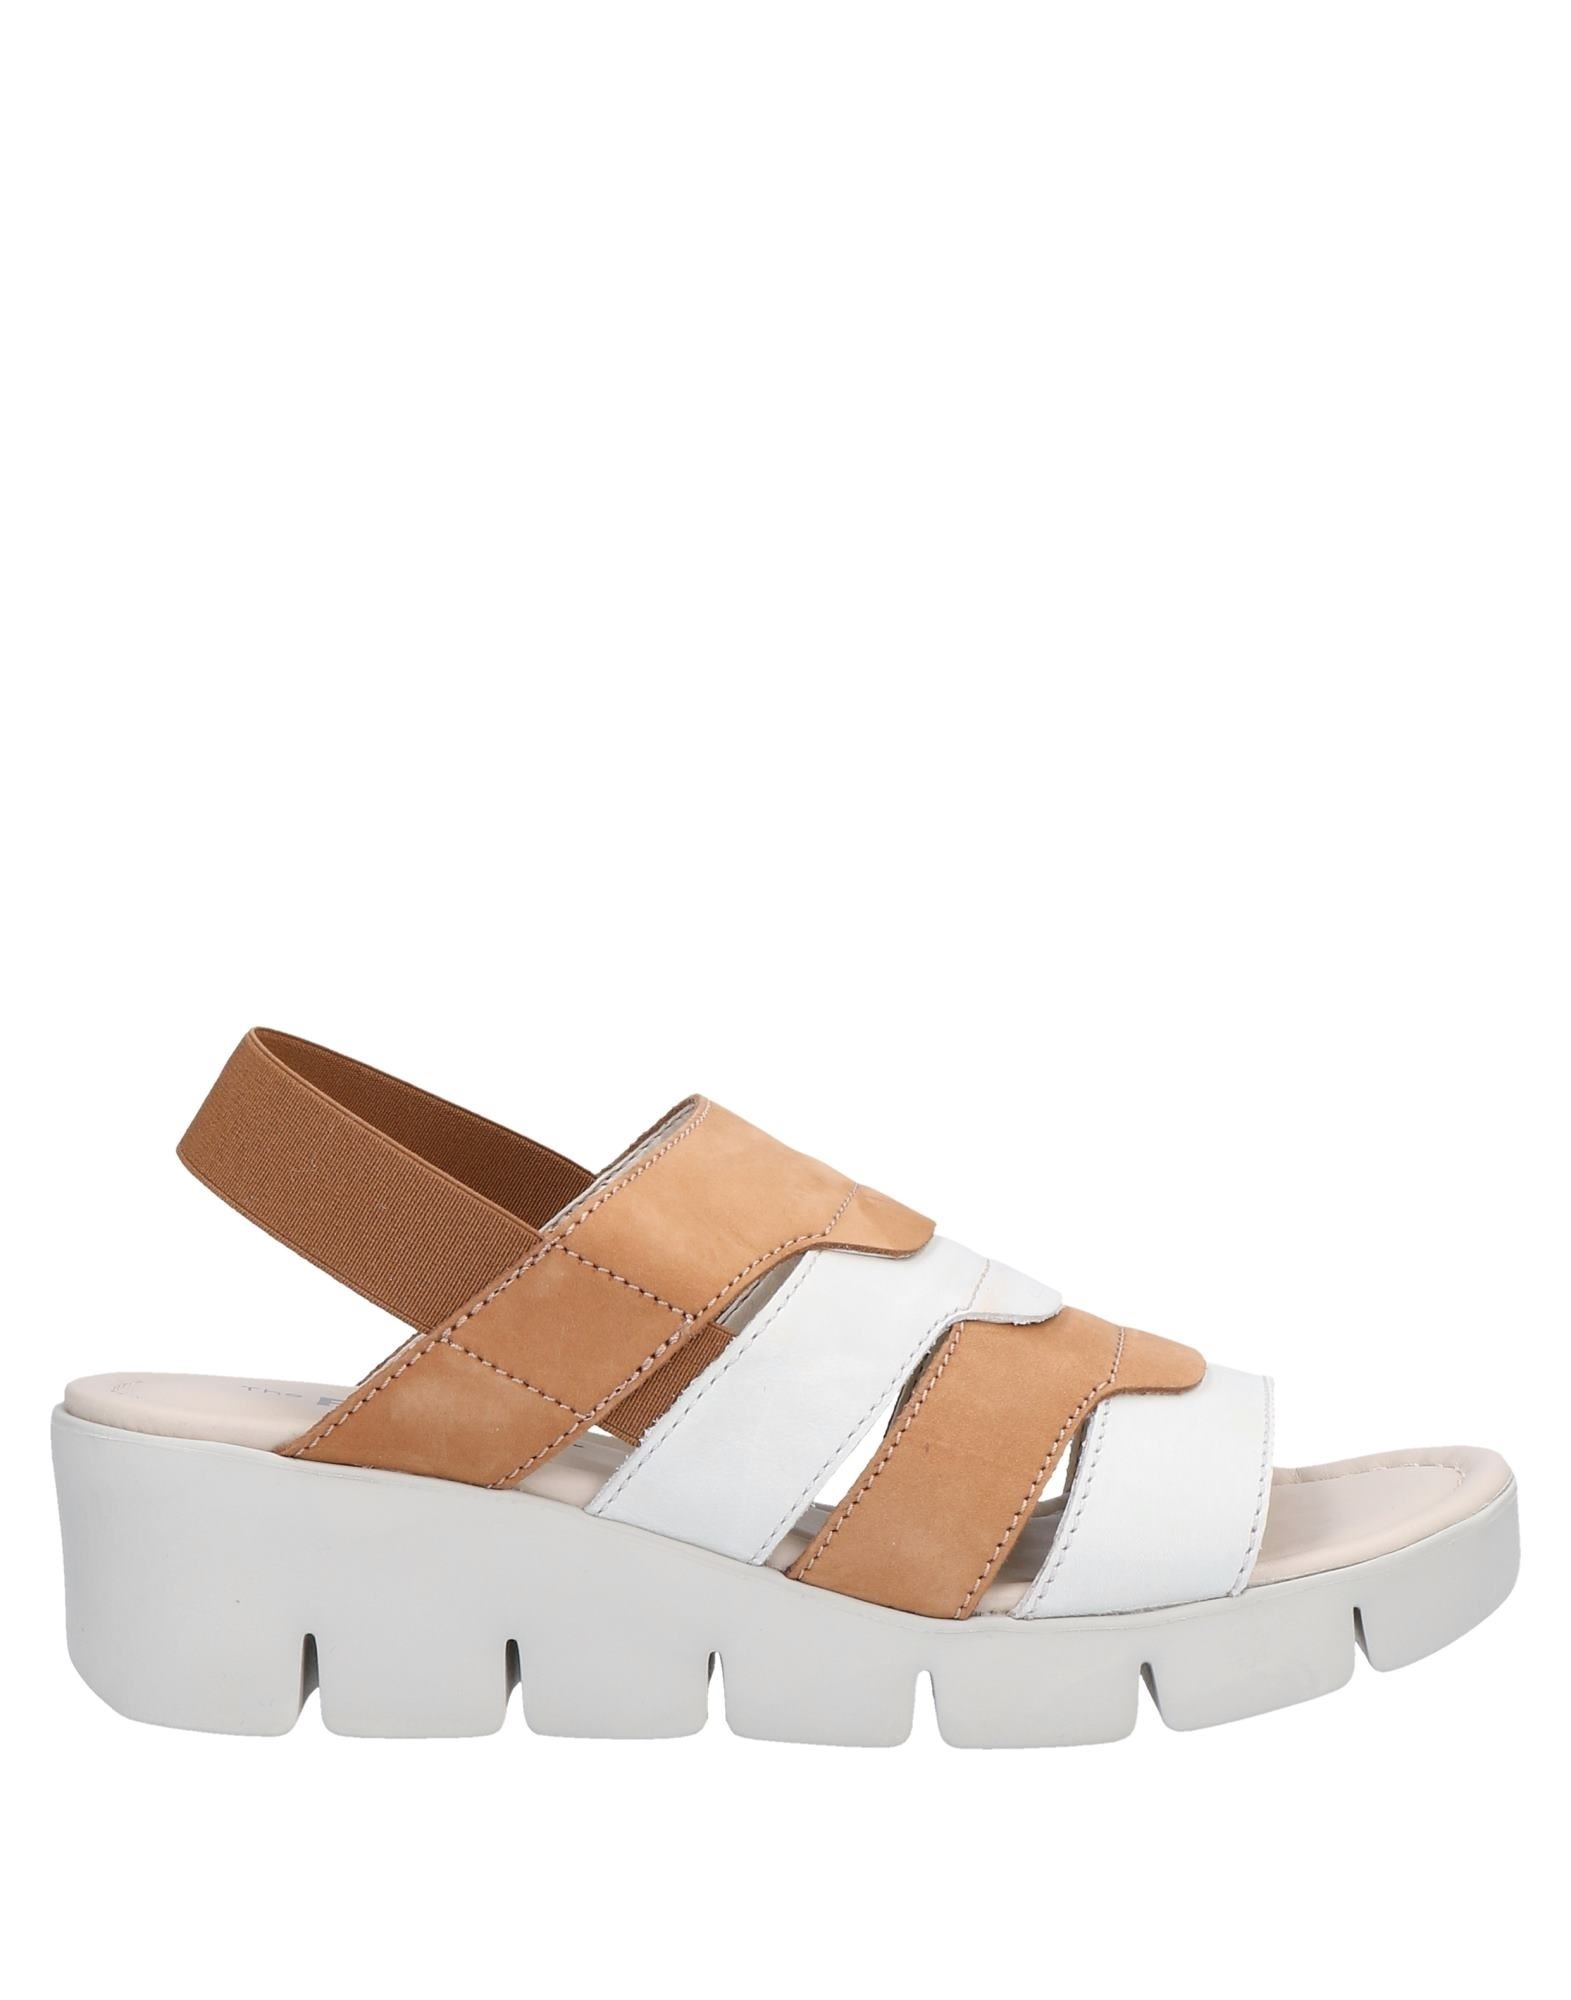 THE FLEXX Sandals. leather, no appliqués, two-tone, elasticized straps, round toeline, wedge heel, leather lining, rubber sole, contains non-textile parts of animal origin. Soft Leather